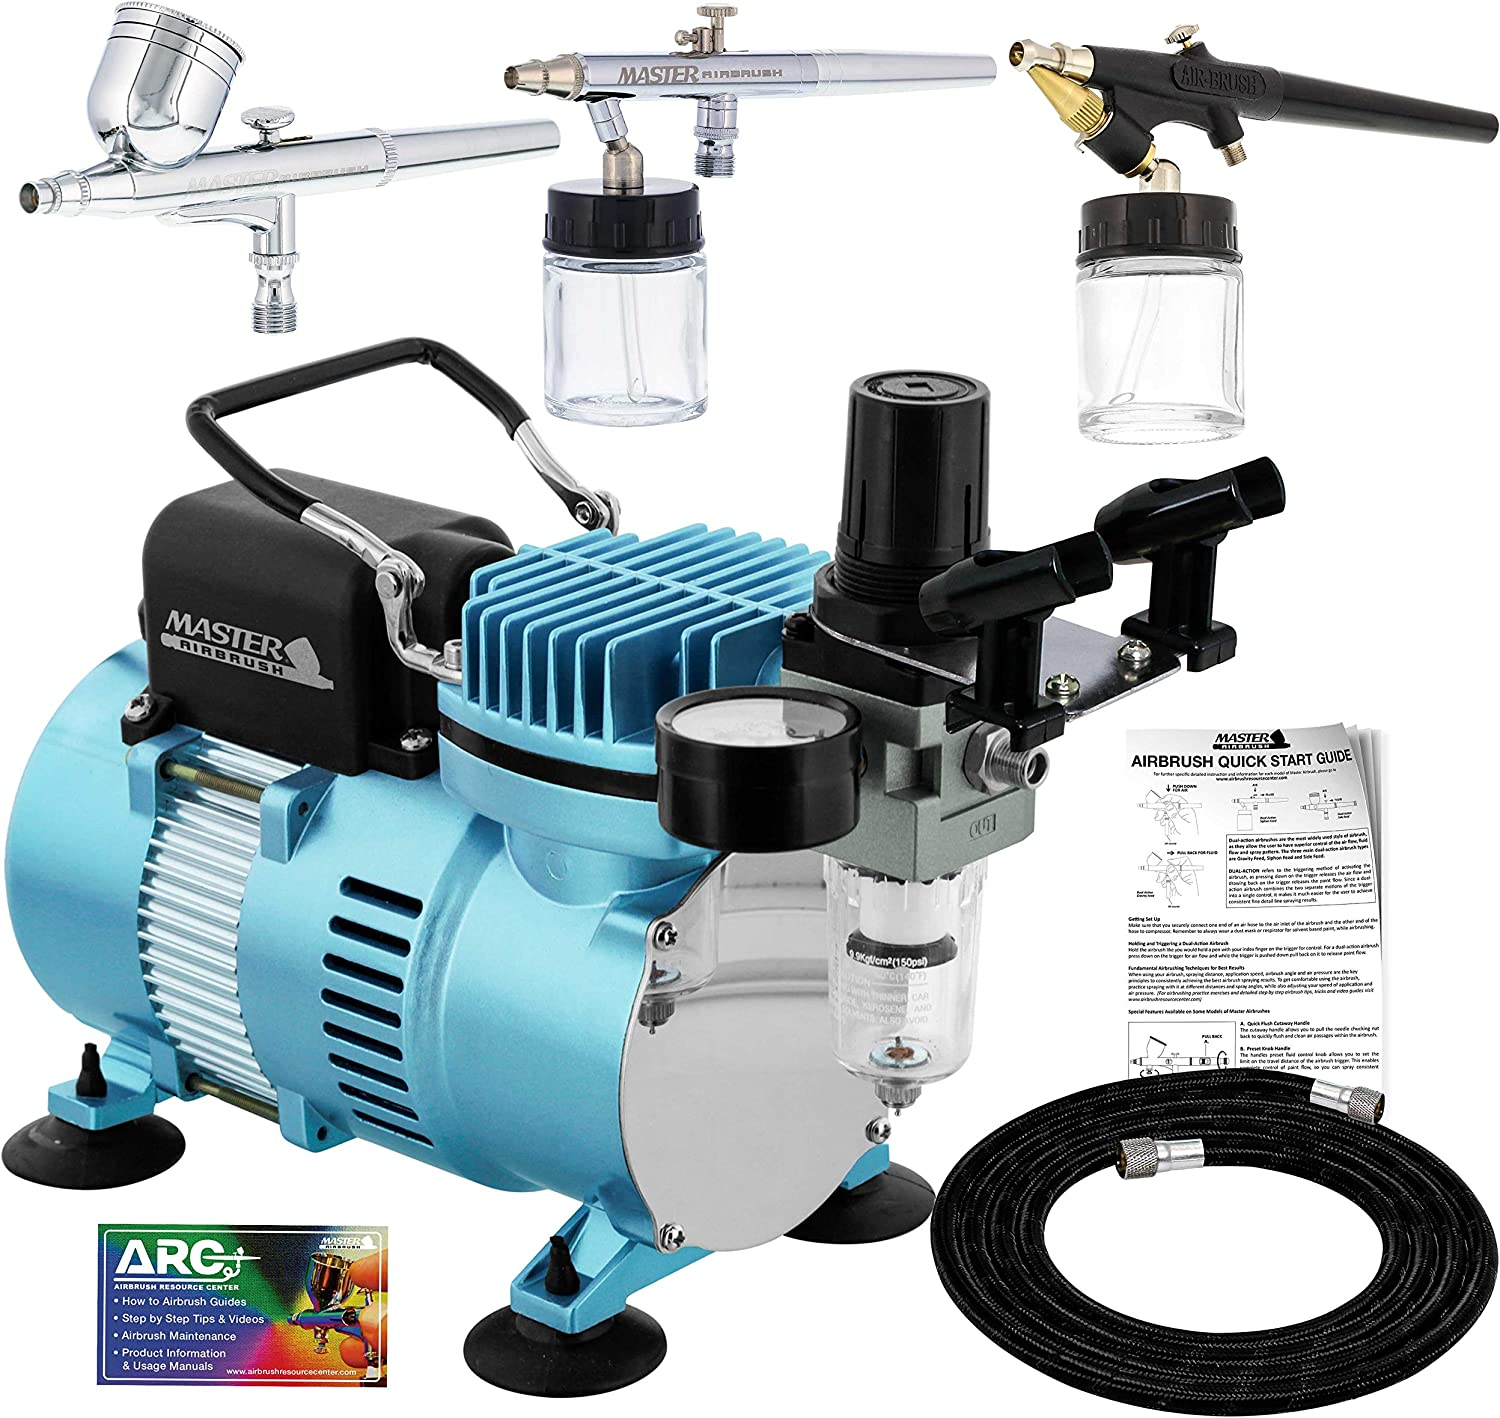 Master Airbrush Cool Runner II Dual Fan Air Compressor Professional Airbrushing System Kit with 3 Airbrush Sets, 0.3 mm Gravity & 0.35, 0.8 mm Siphon Feed - Hose Holder, How To Airbrush Learning Guide: Home & Kitchen